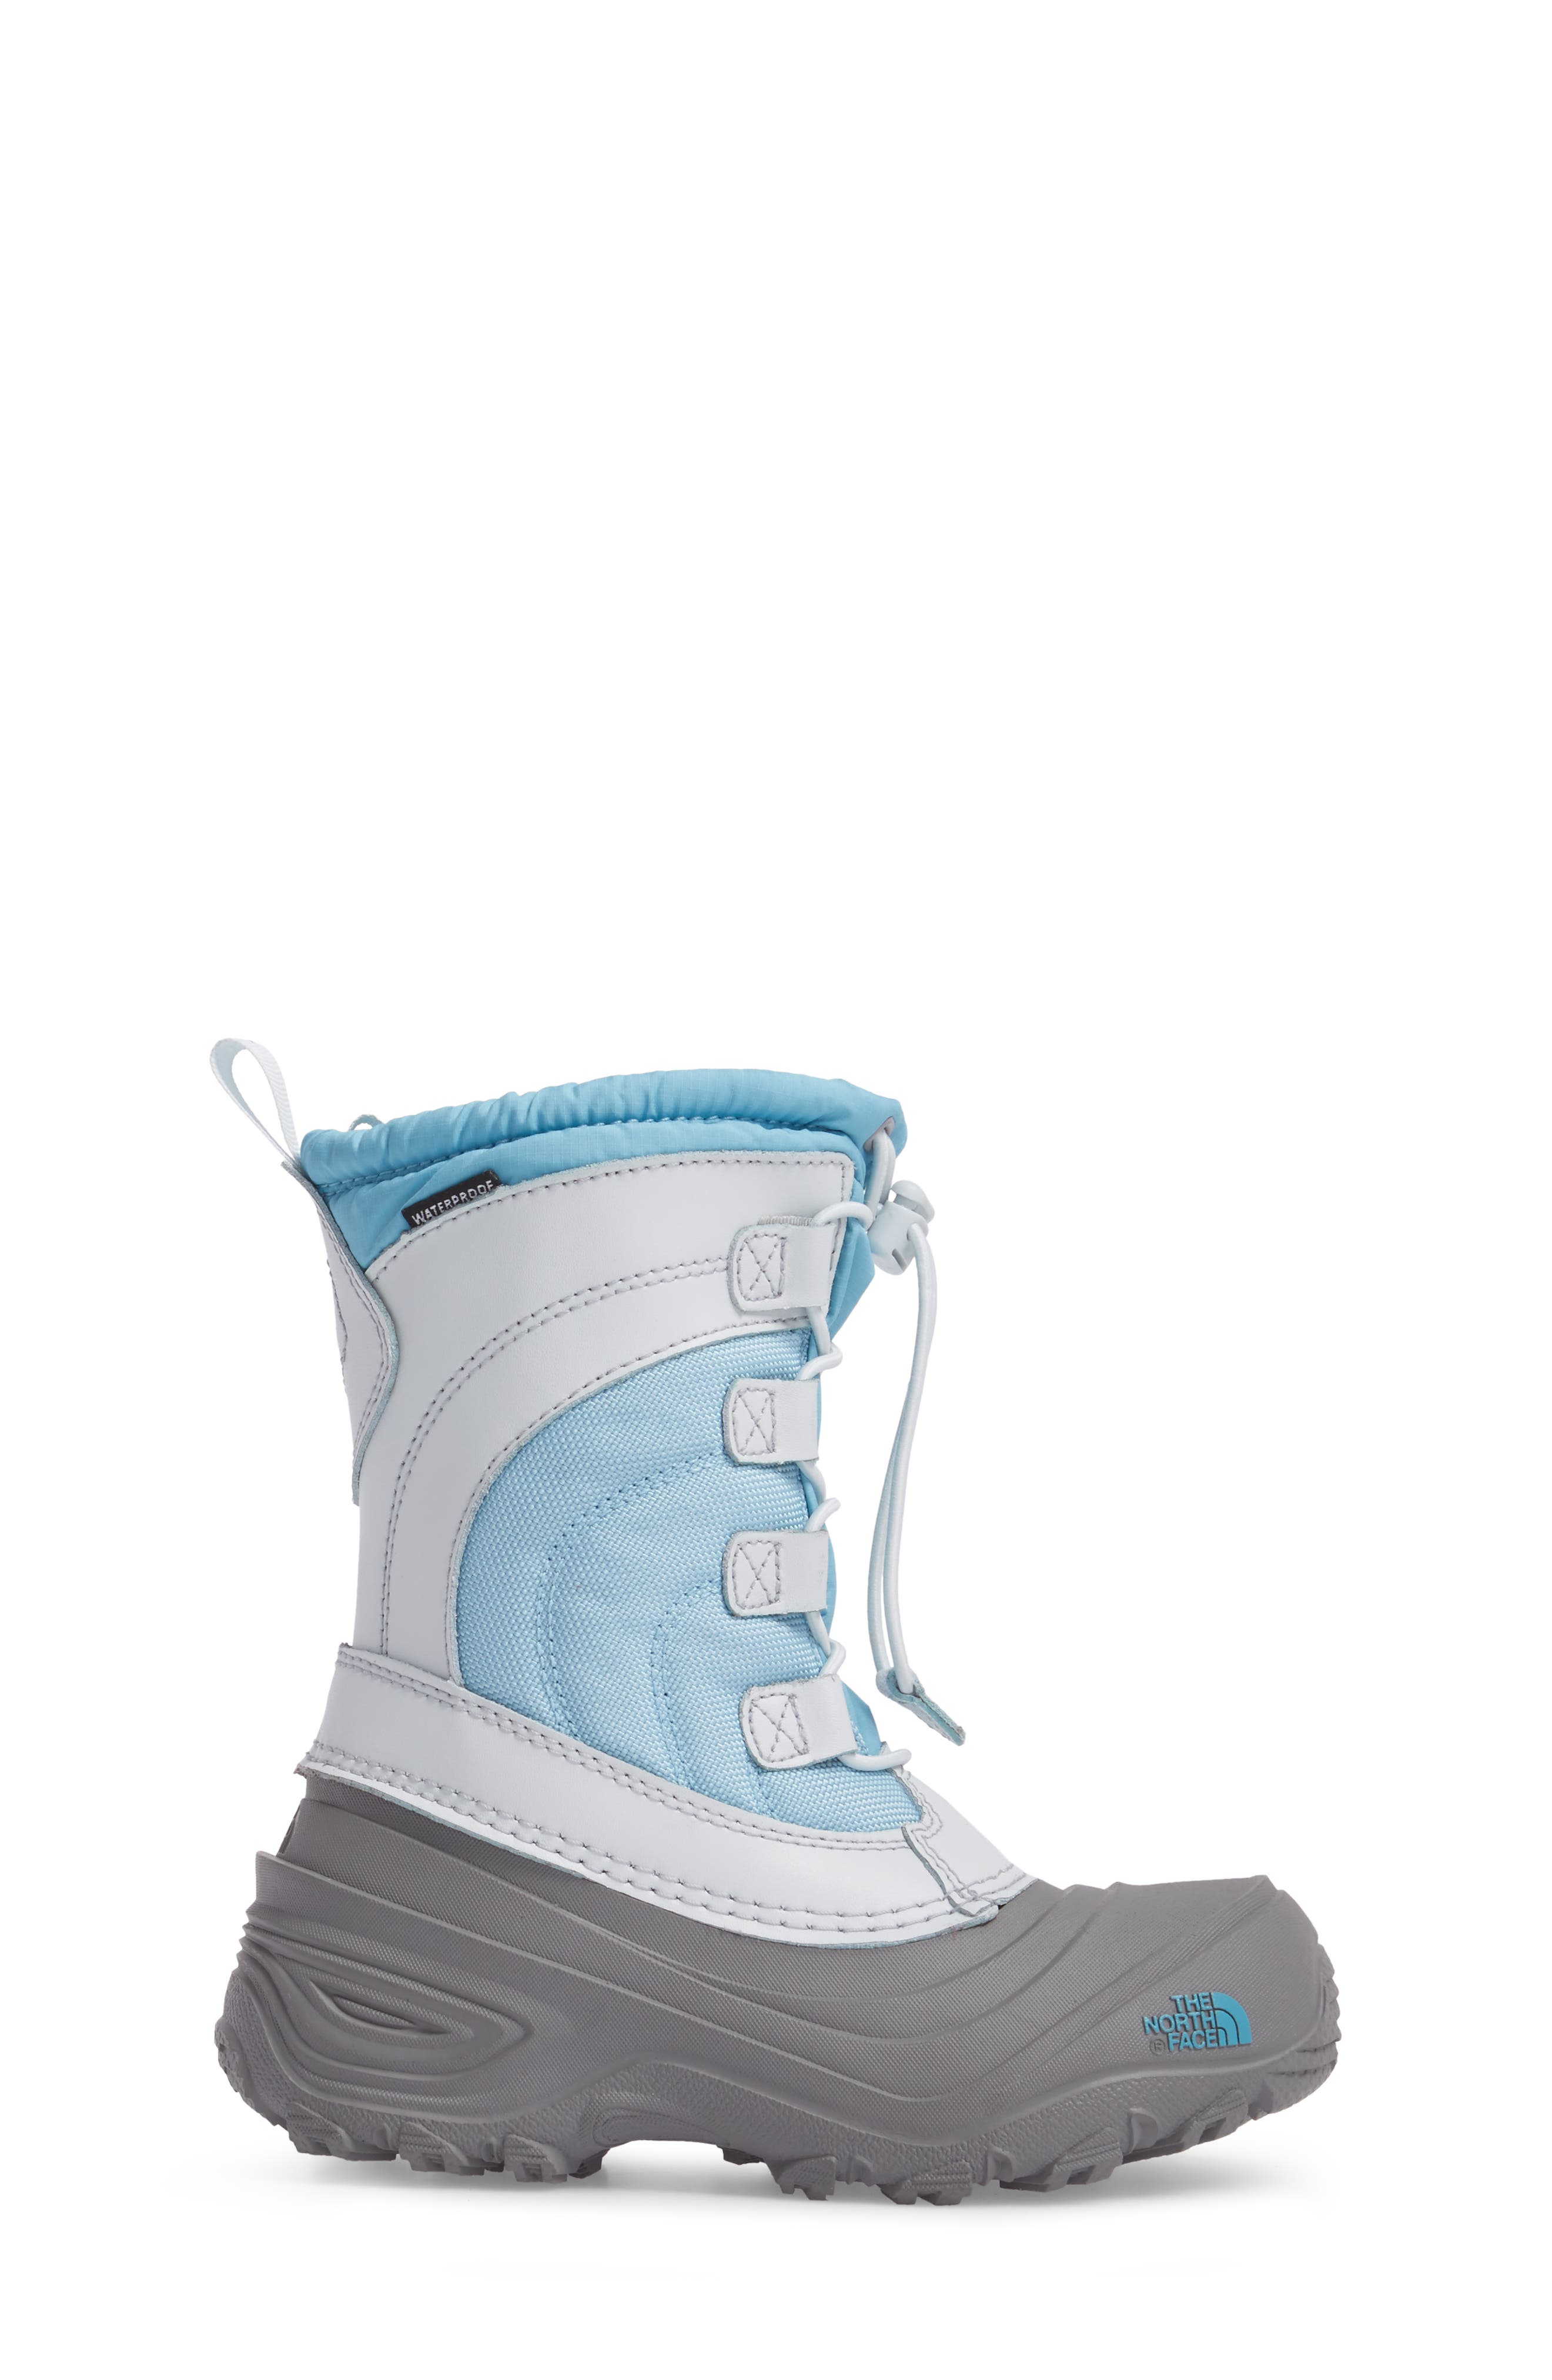 Alpenglow IV Waterproof Insulated Winter Boot,                             Alternate thumbnail 3, color,                             Blizzard Blue/ Ice Blue